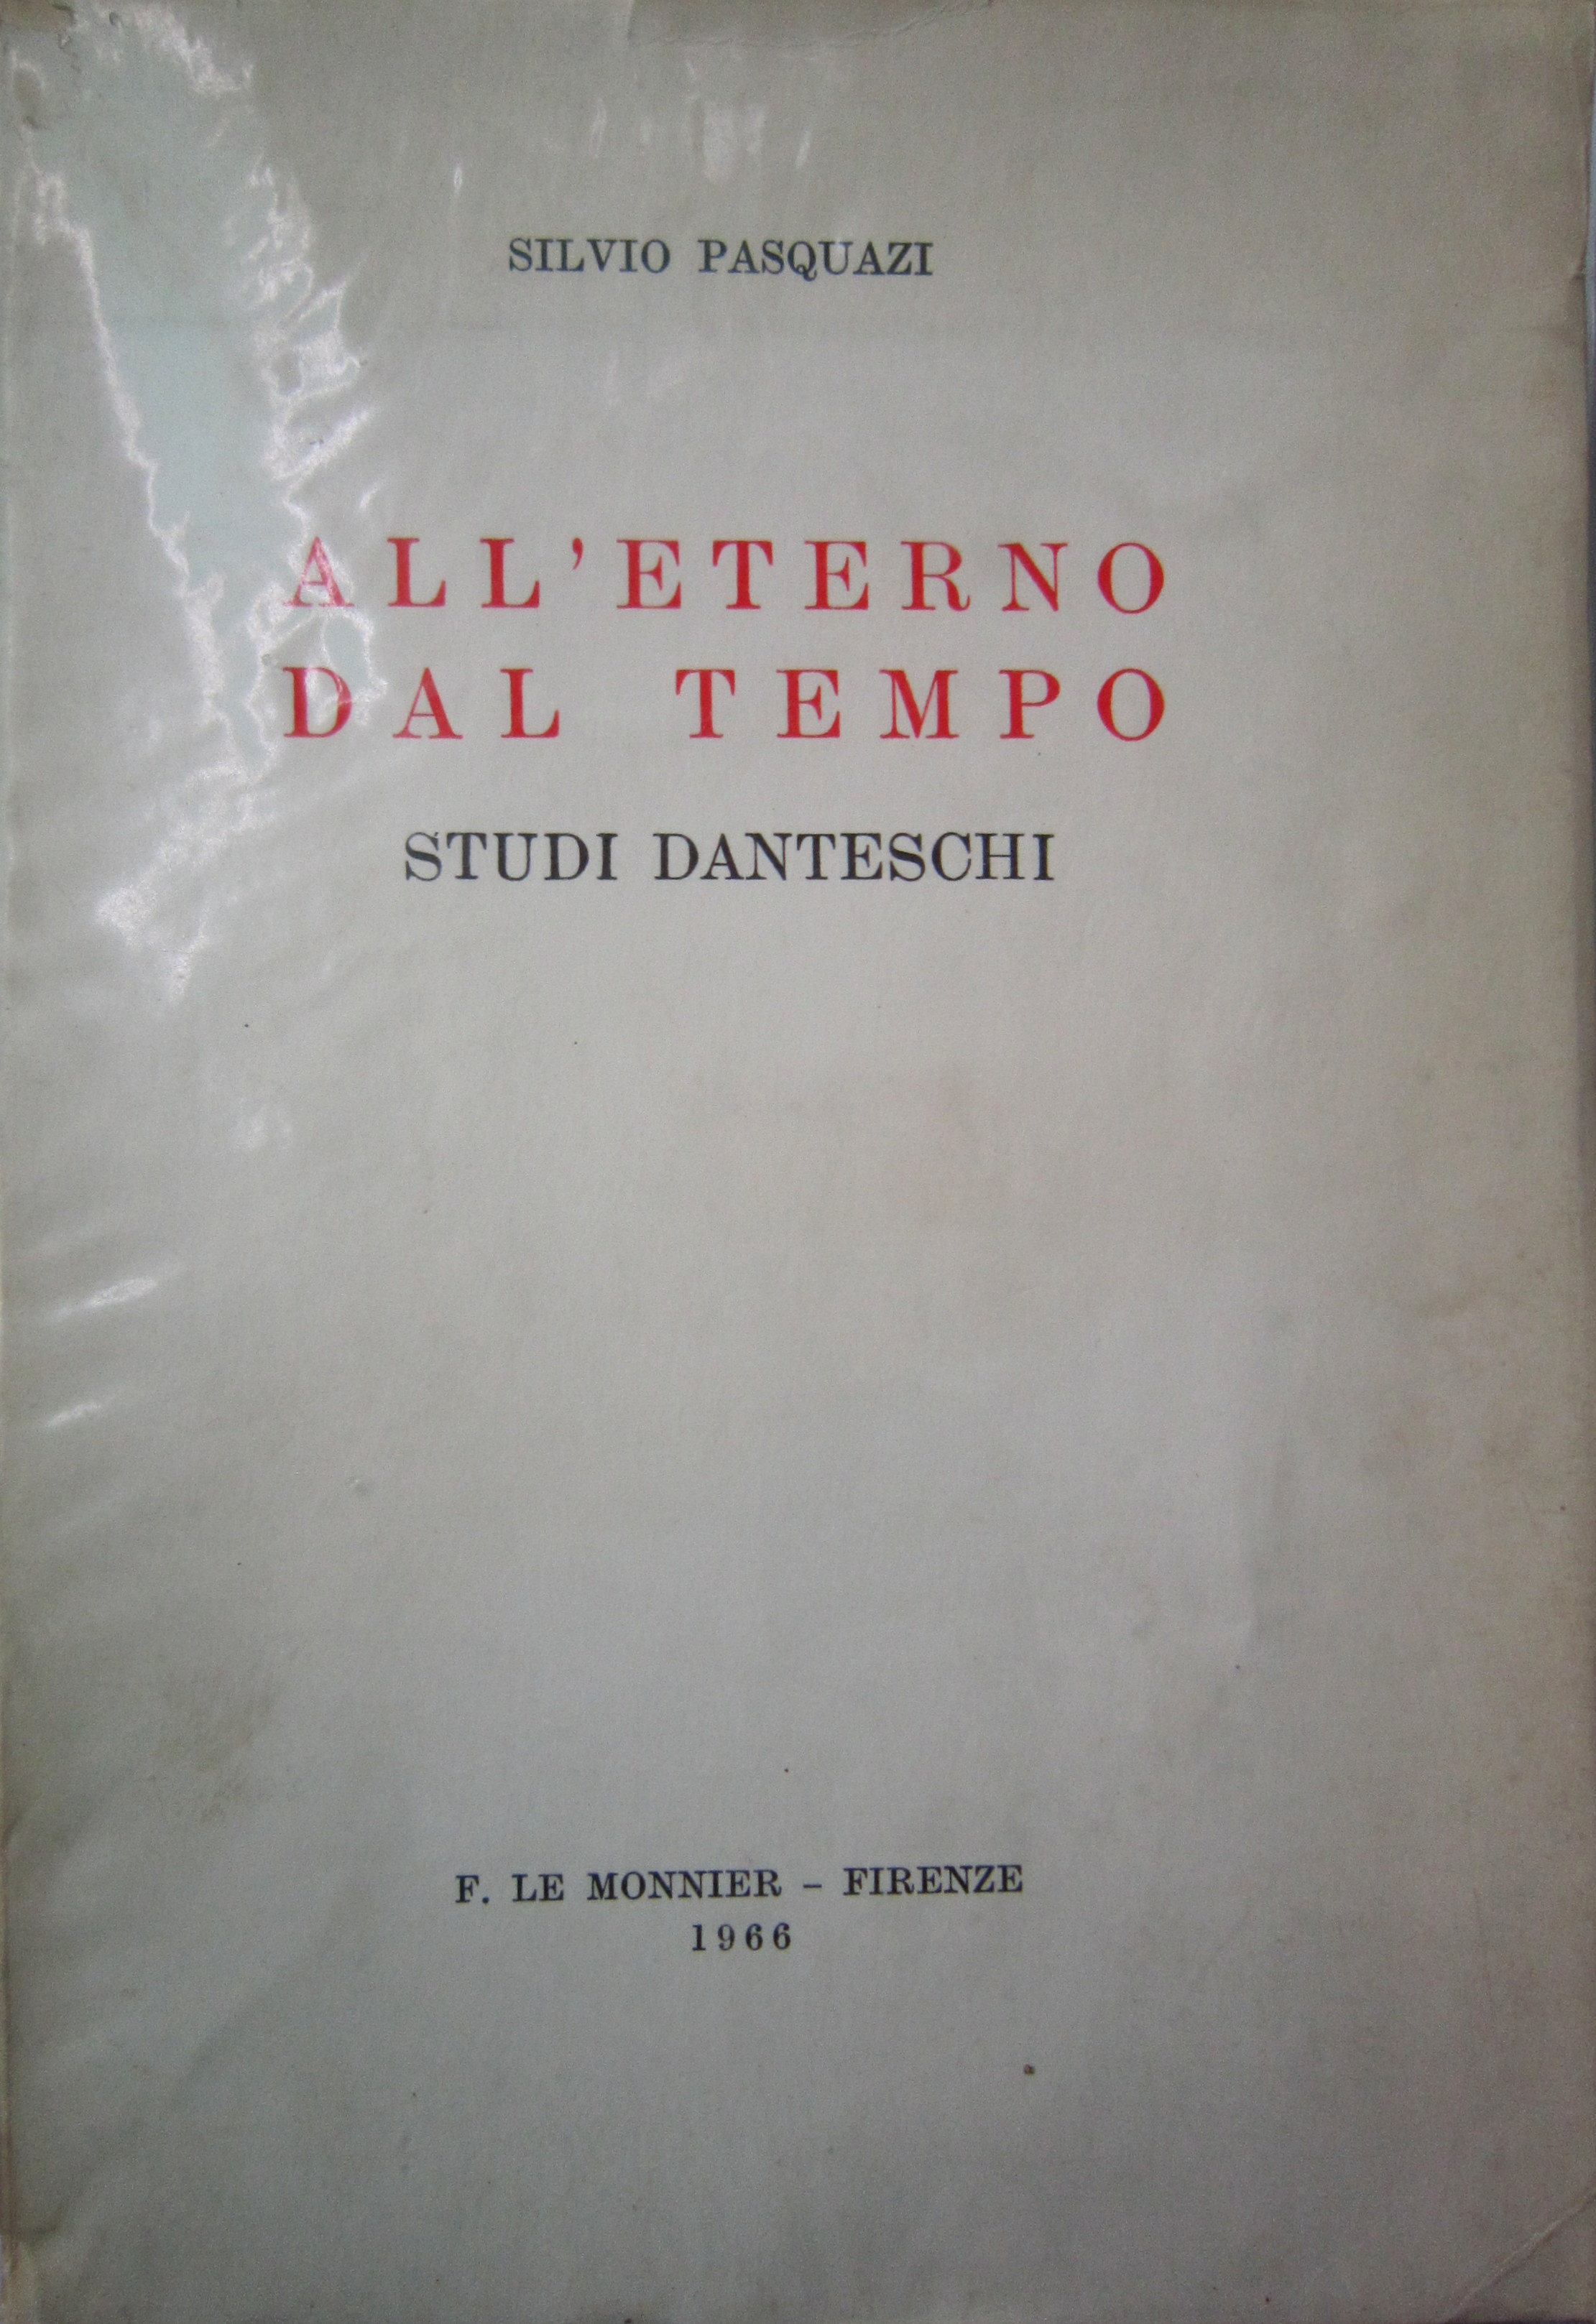 All'eterno dal tempo